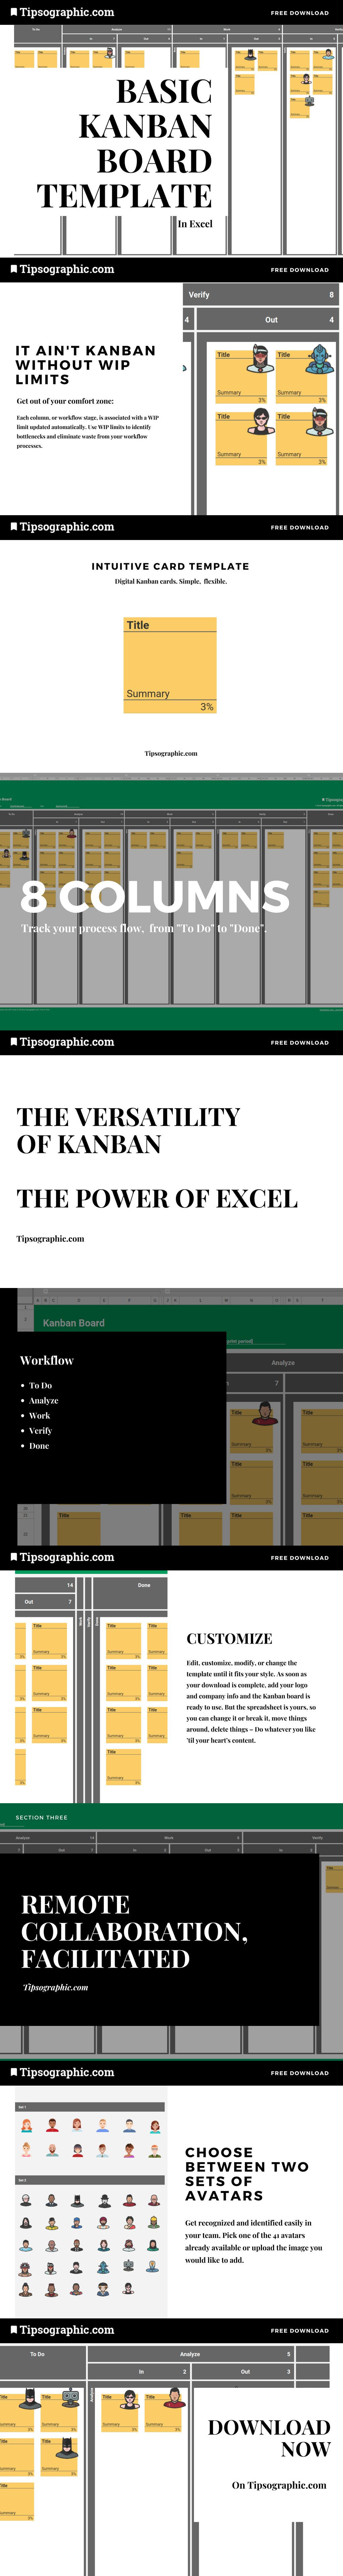 Kanban Board Template For Excel And Sheets Free